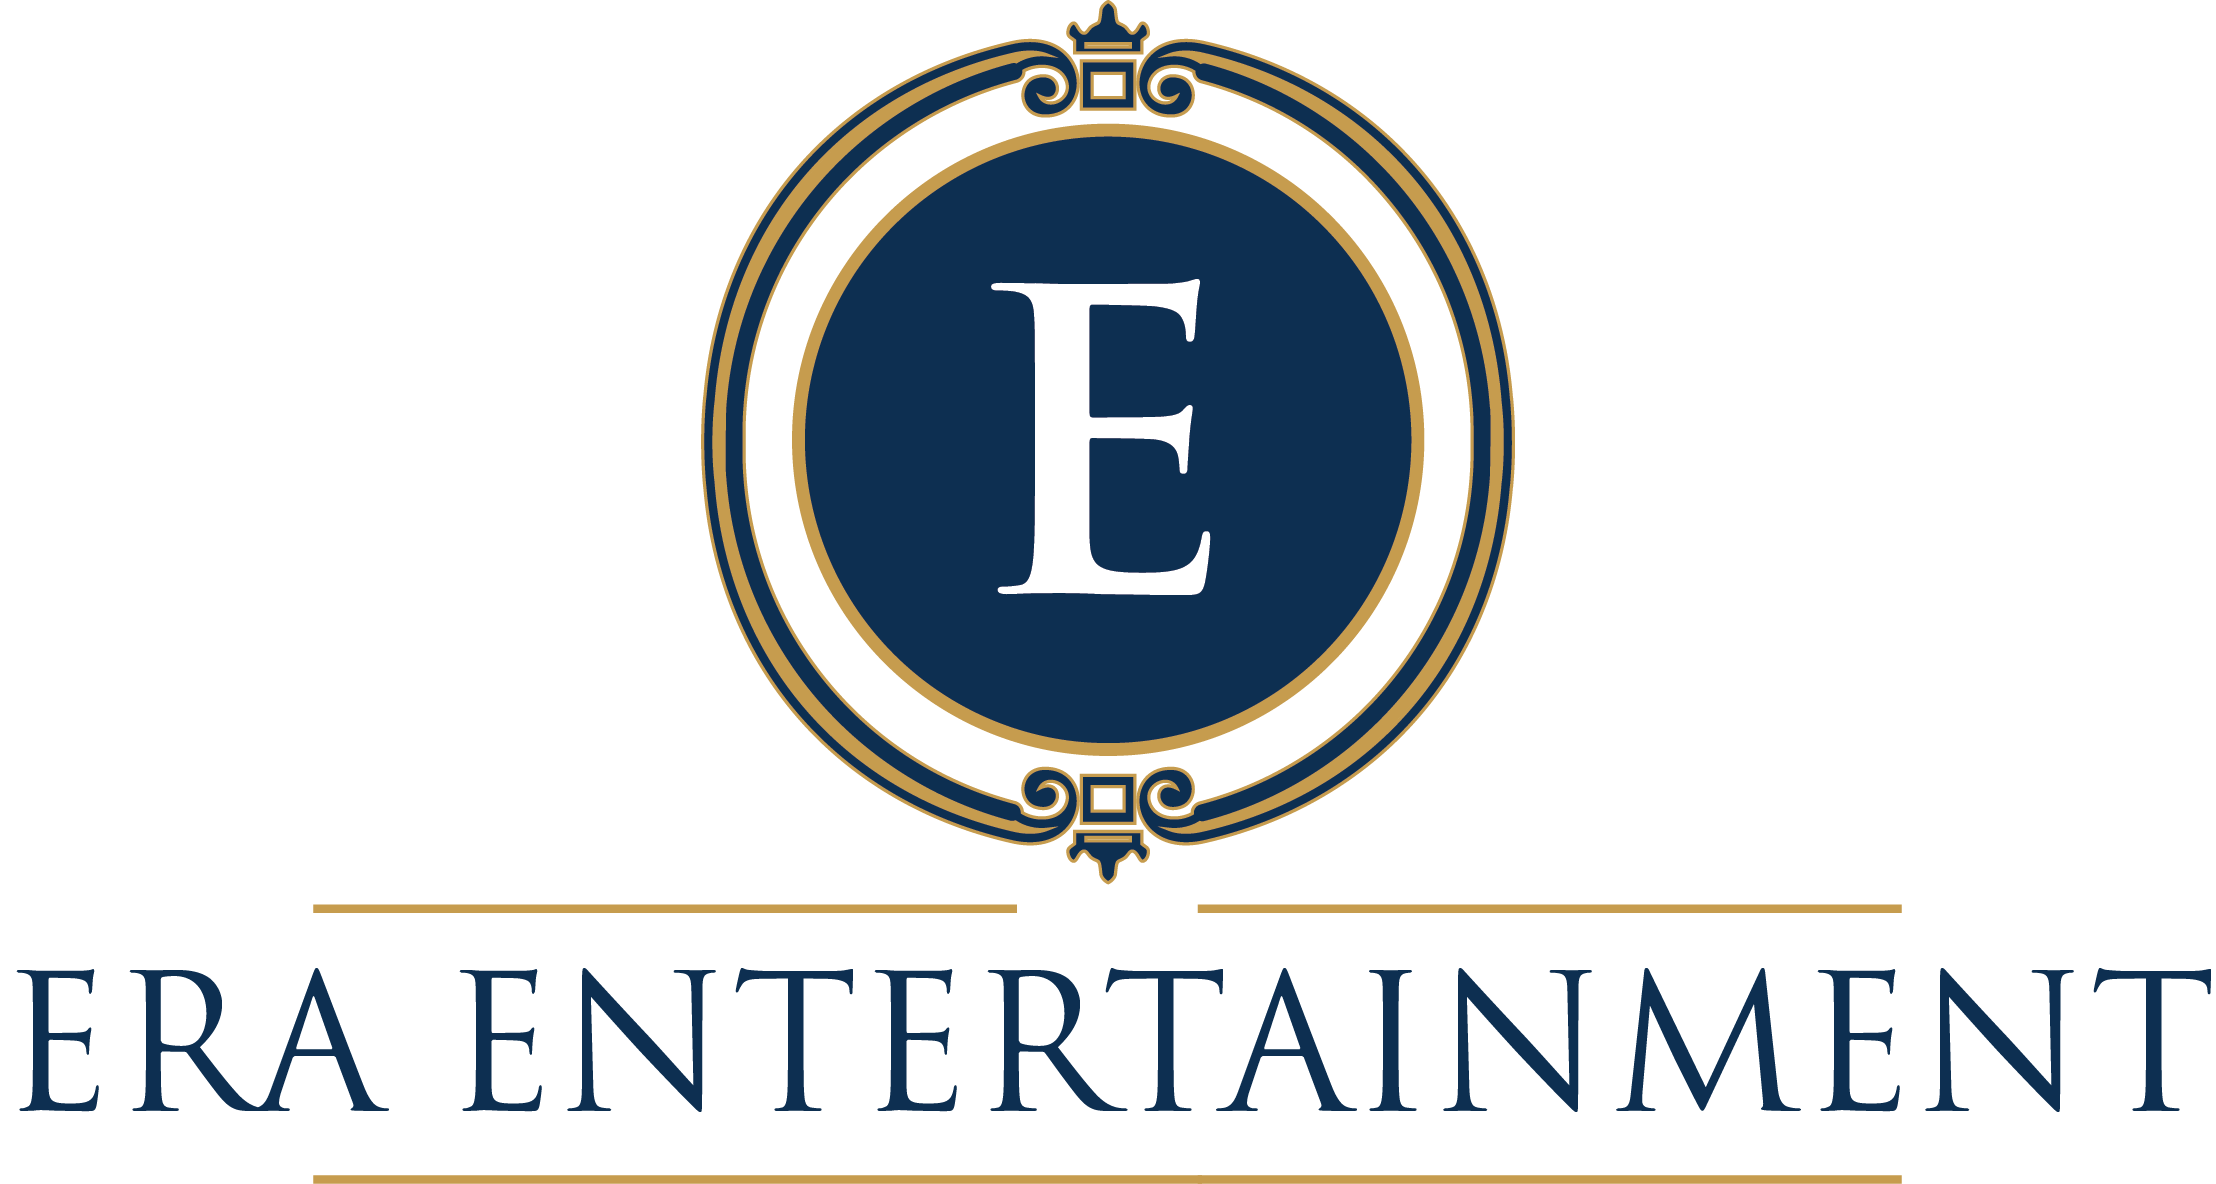 Era Cinecrafts & Events LLP